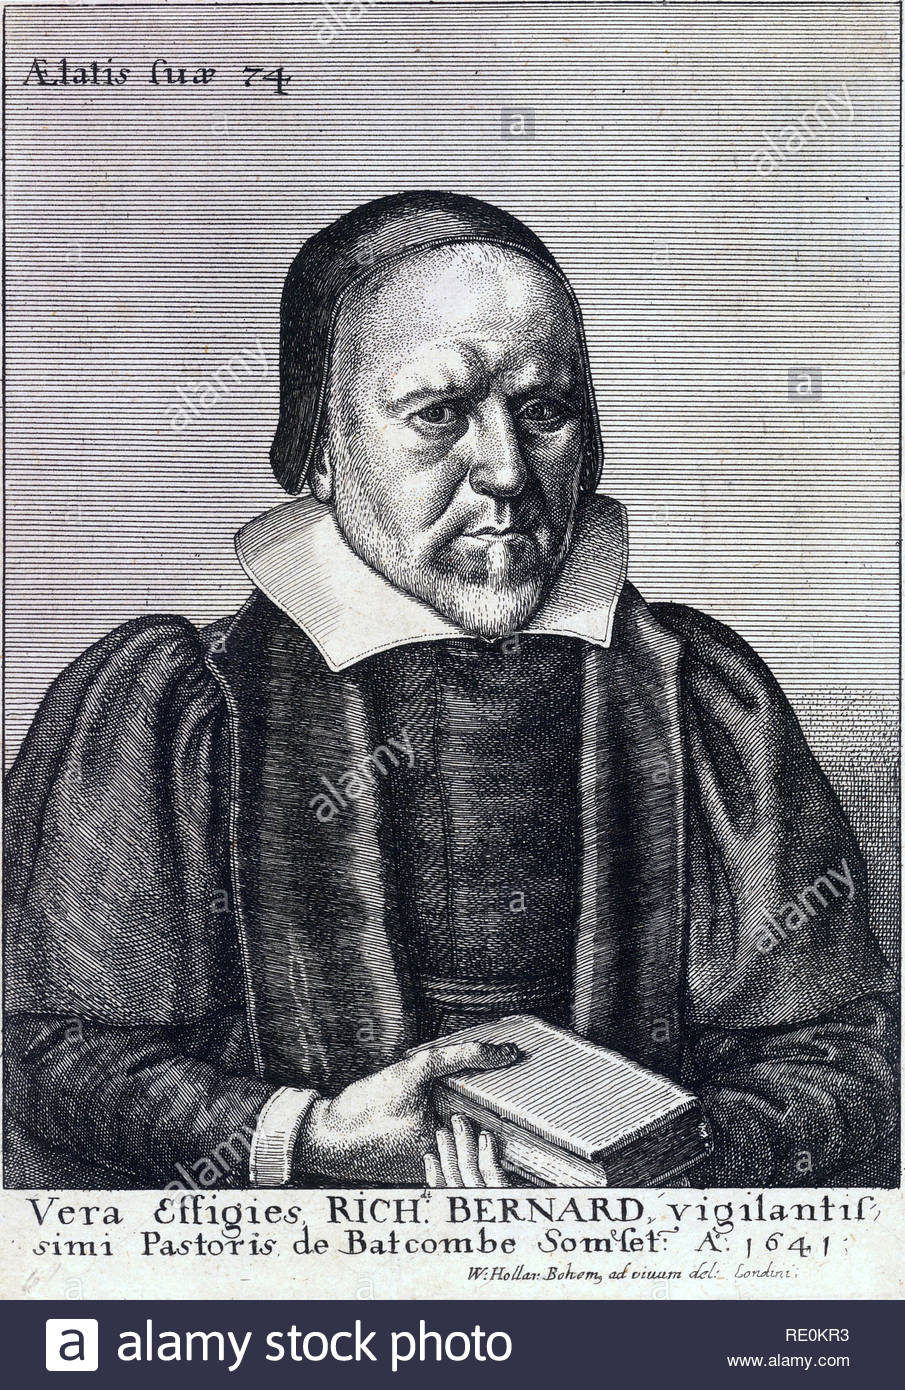 Richard Bernard portrait, 1568 – 1641, was an English Puritan clergyman and writer, etching by Bohemian etcher Wenceslaus Hollar from 1600s - Stock Image